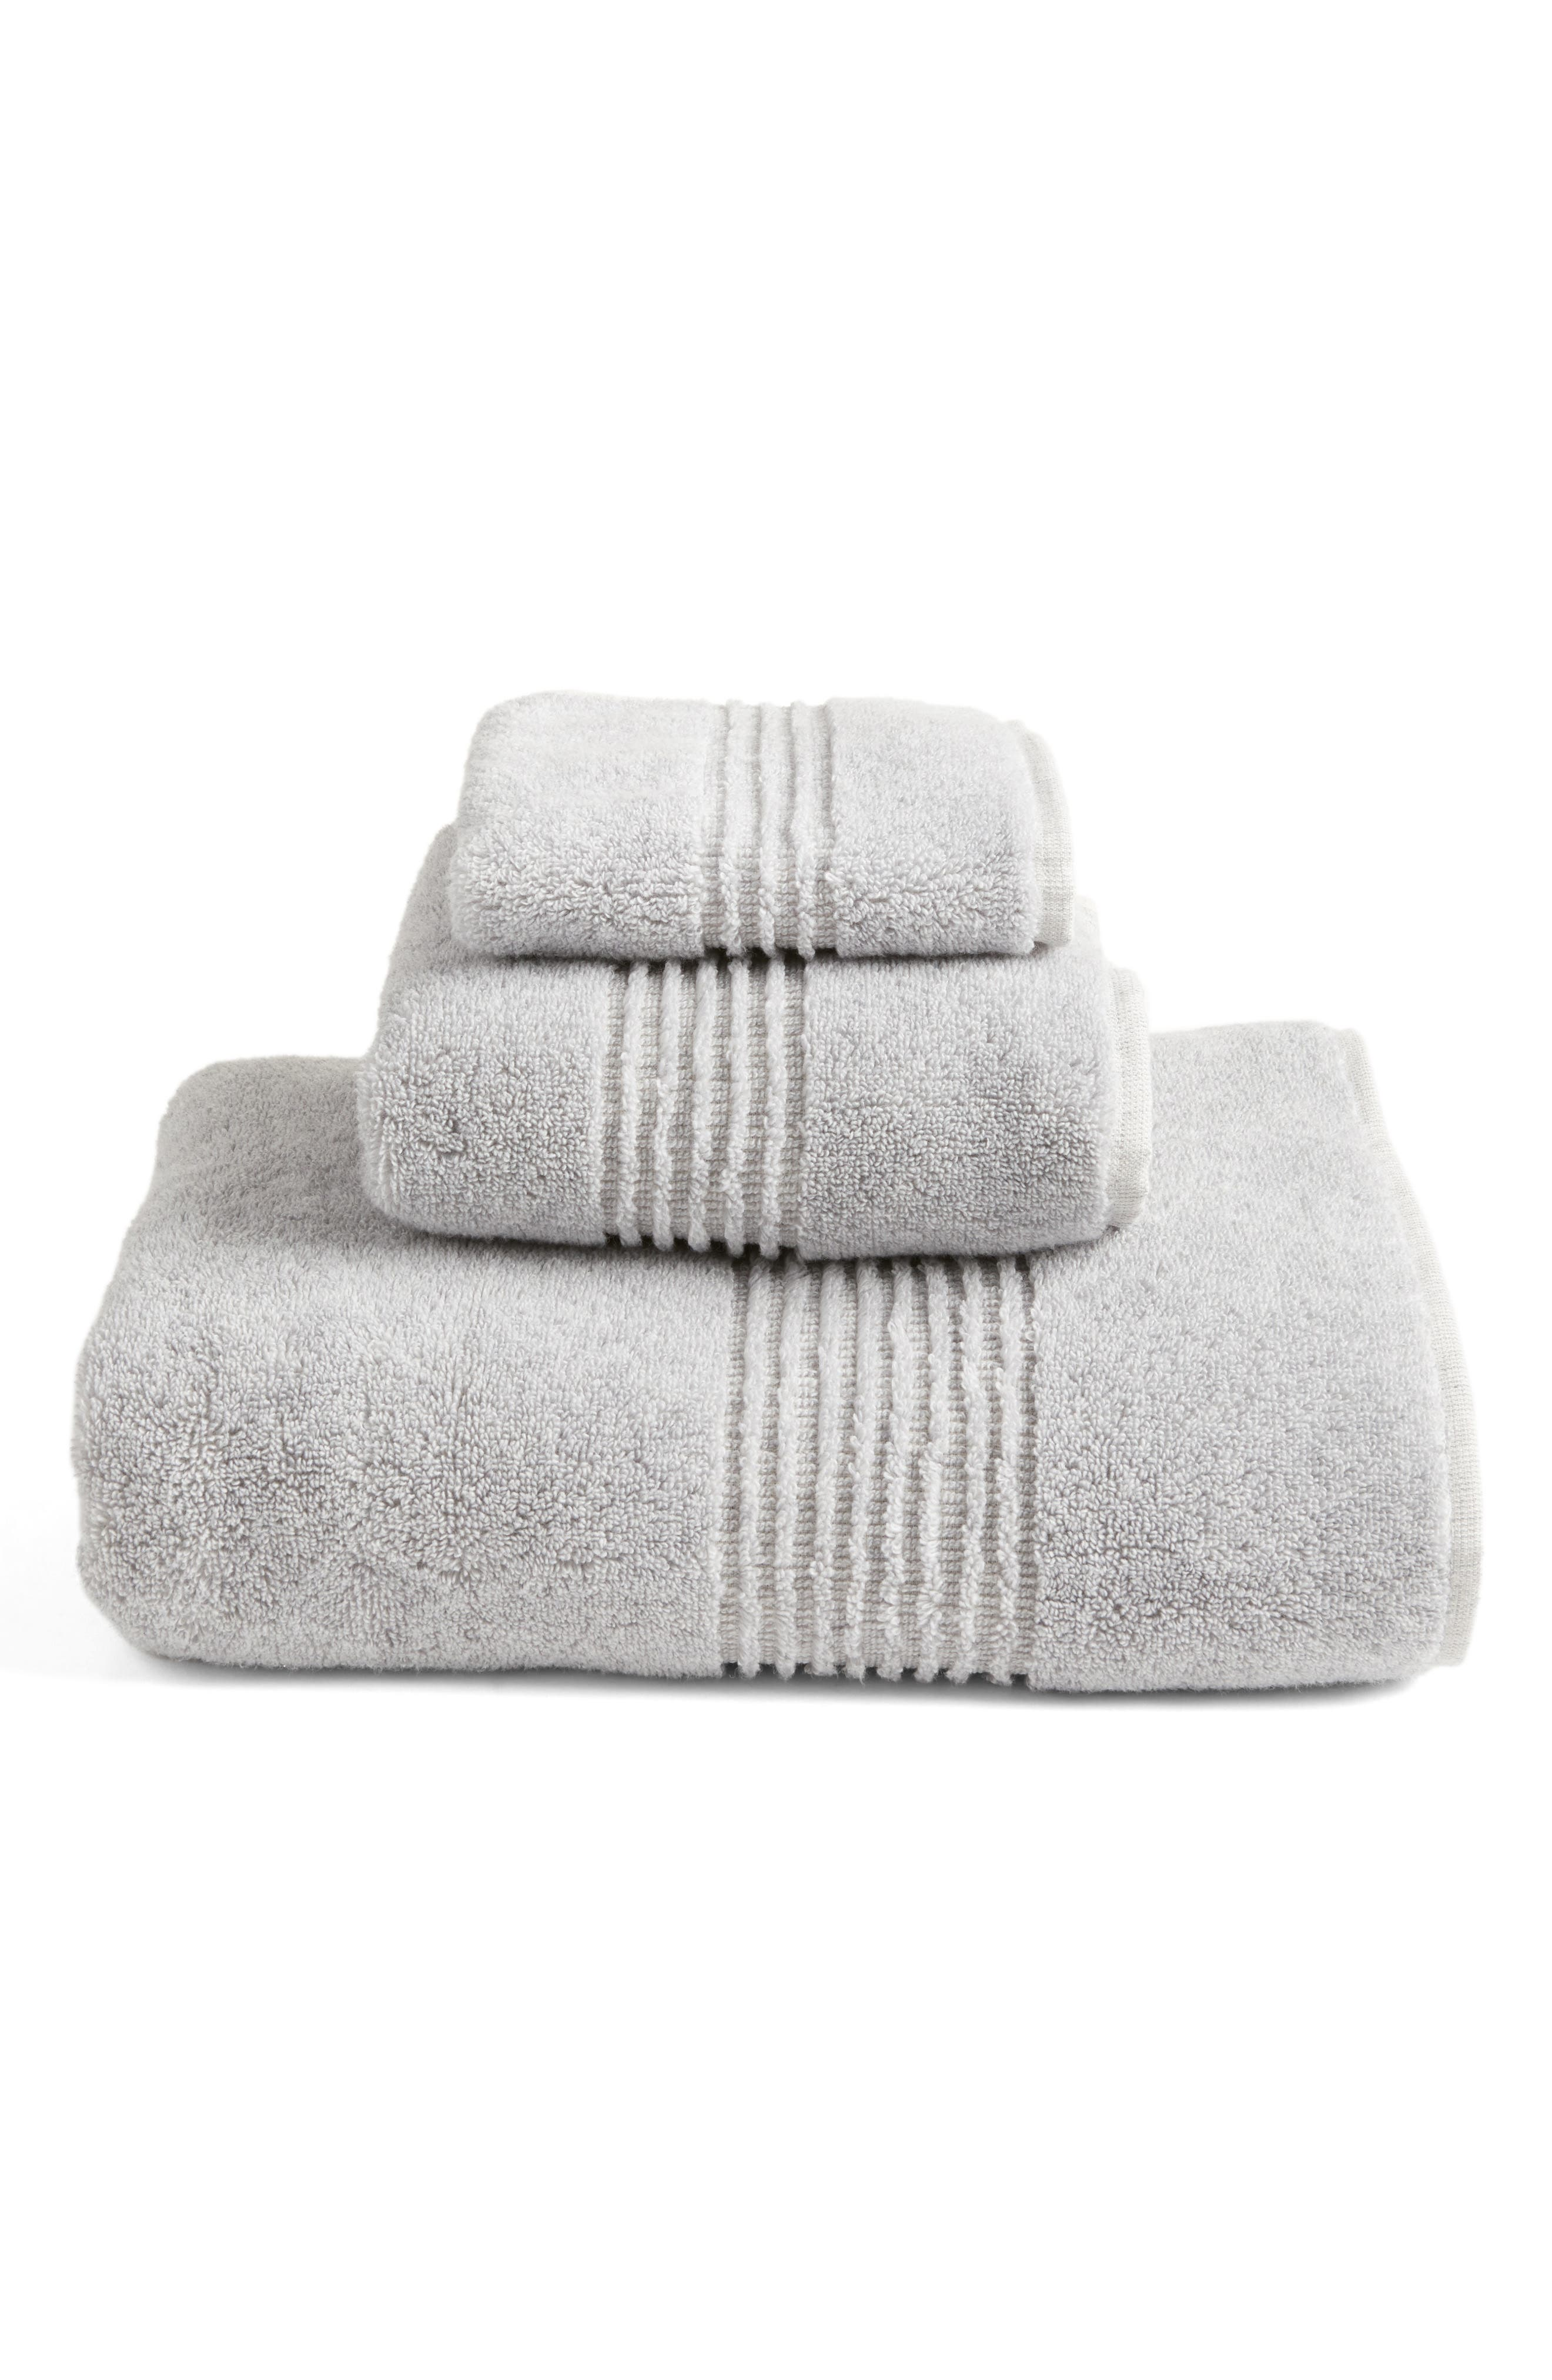 Organic Hydrocotton Hand Towel,                         Main,                         color, GREY SOFT